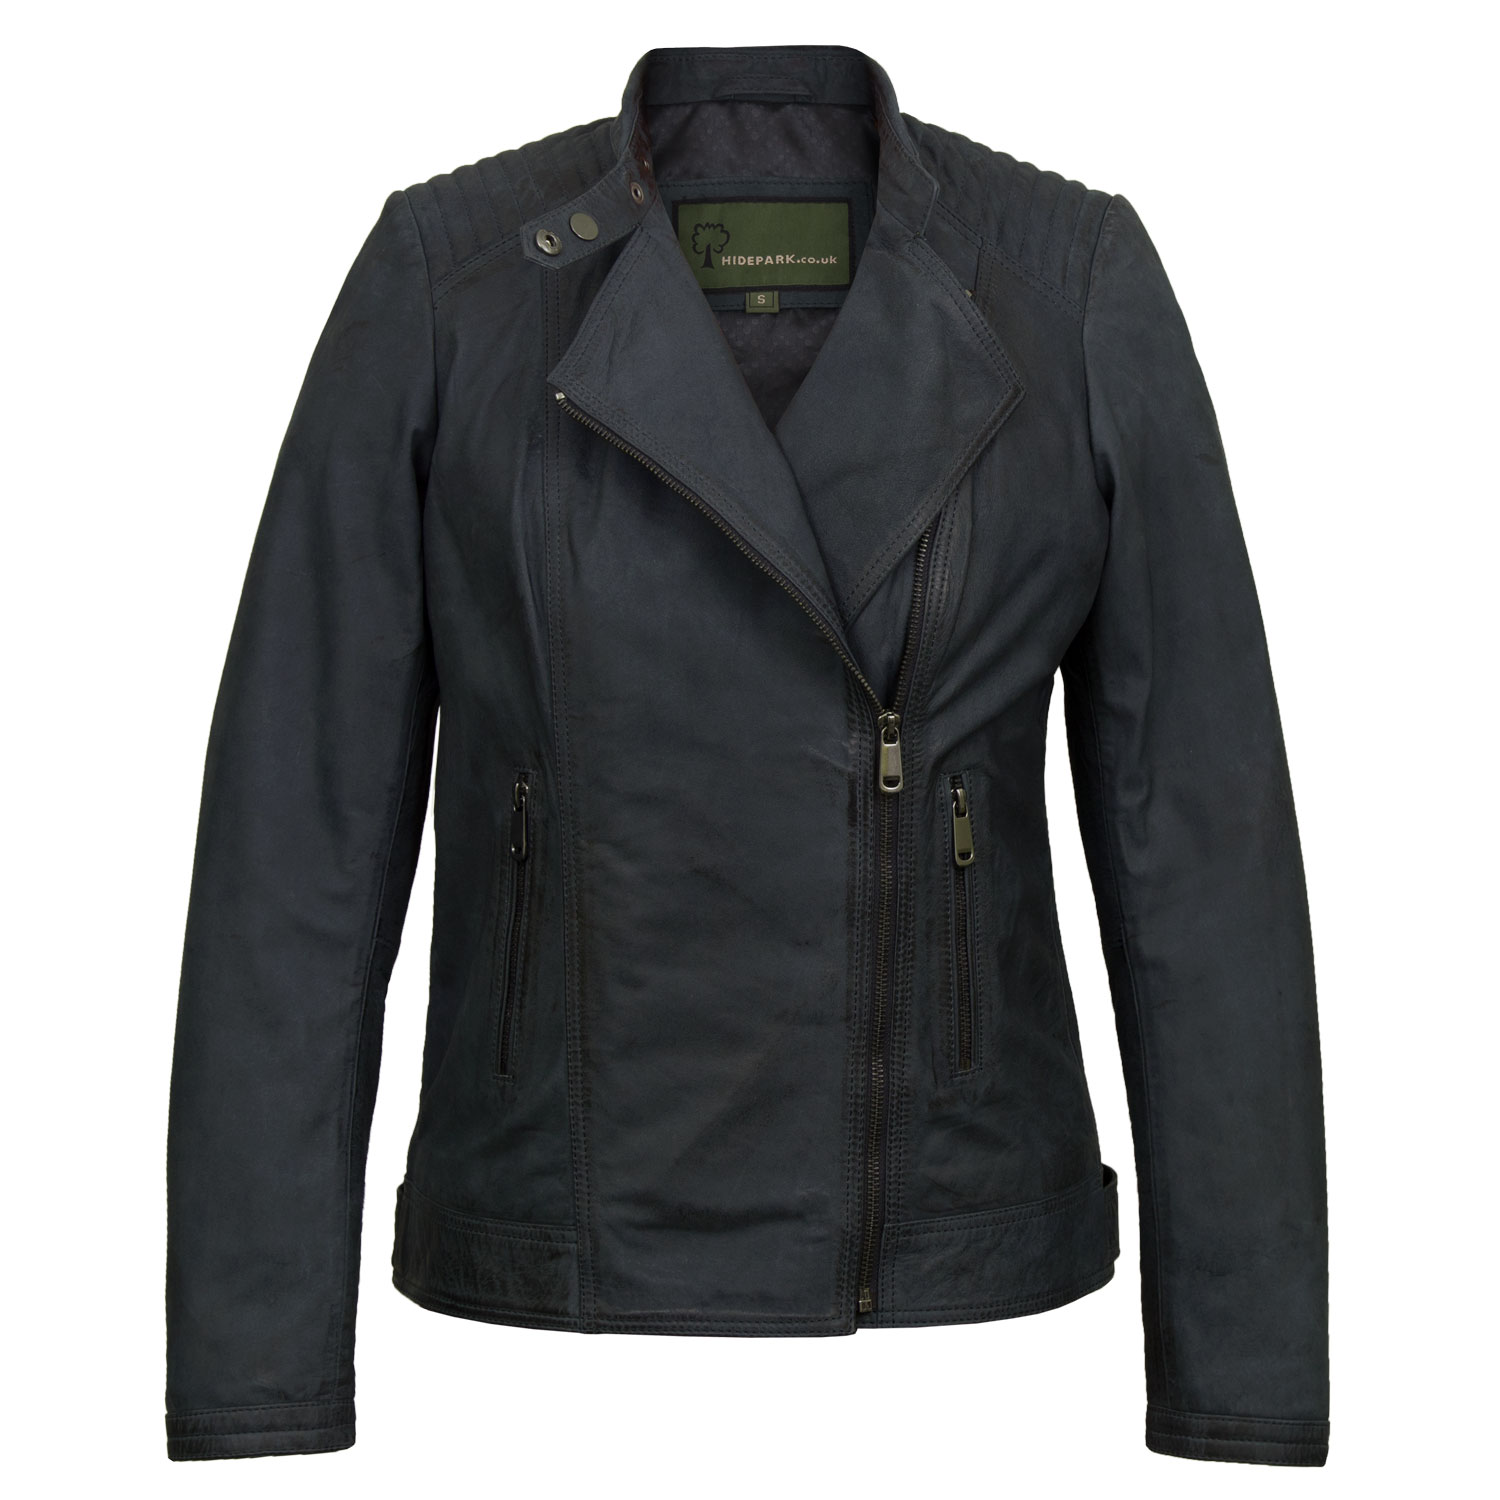 Women's Navy Leather Biker Jacket: Britney